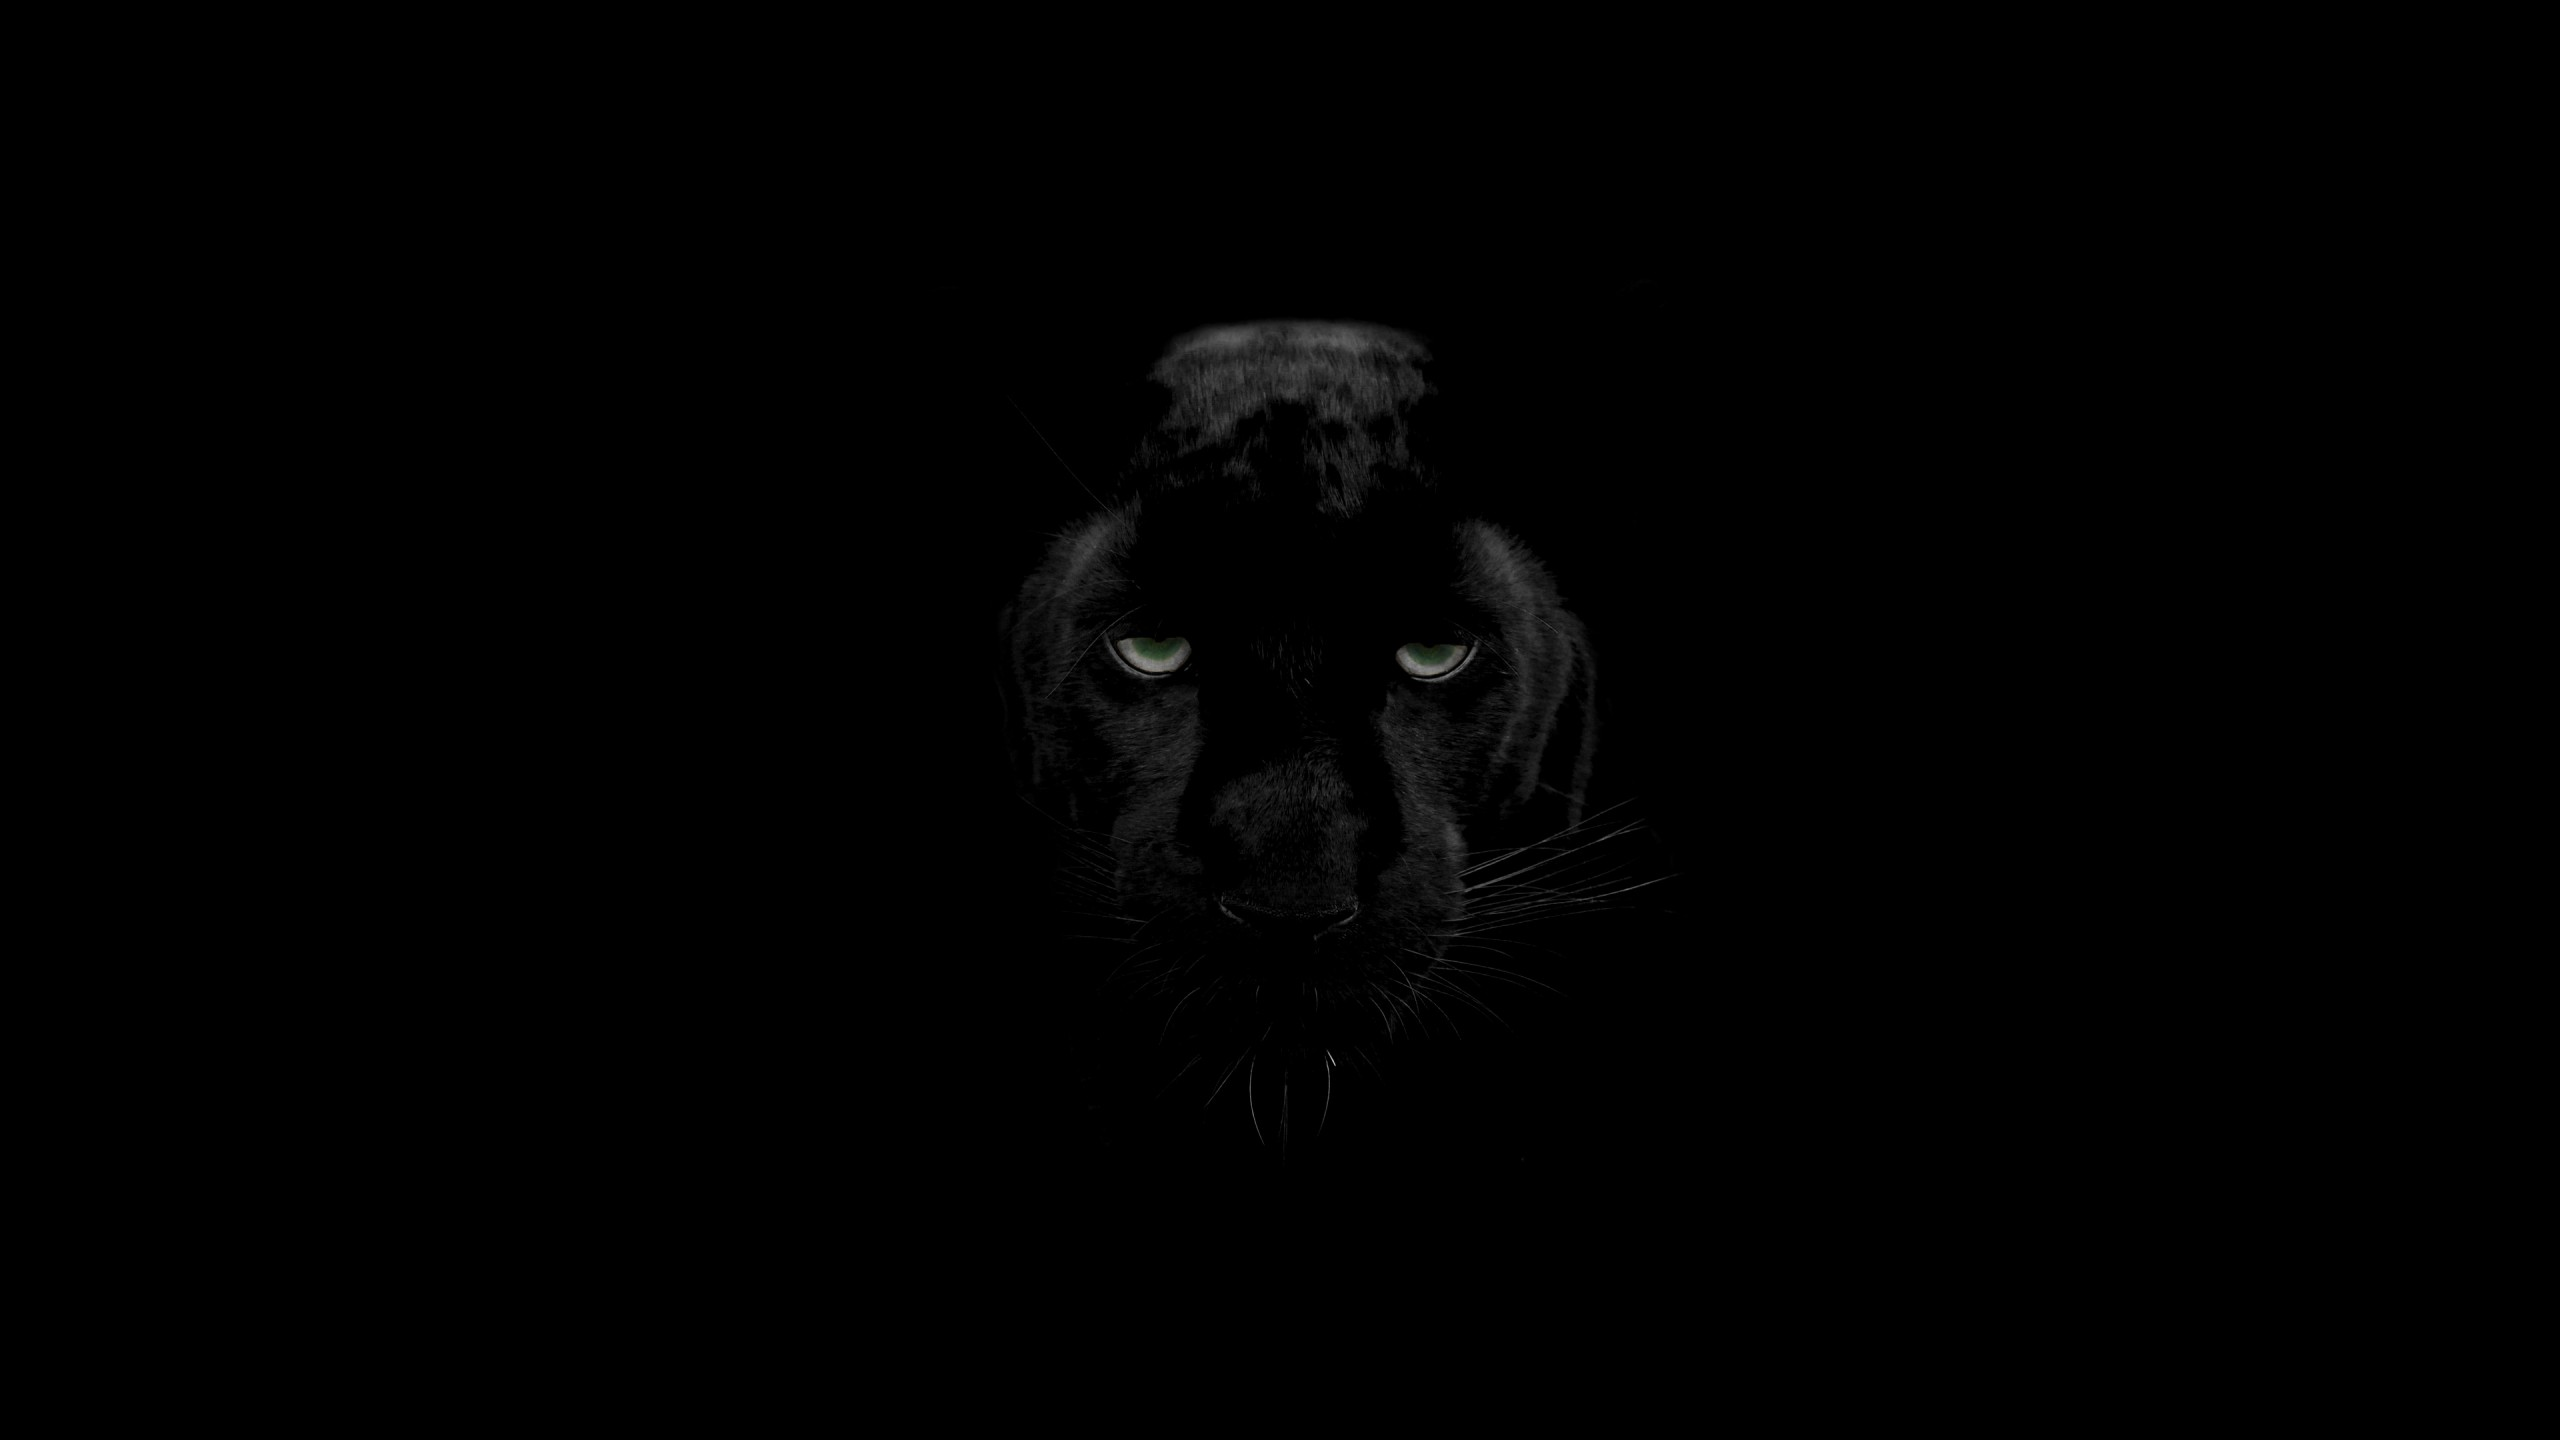 Green Eyes Black Panther Hd Animals 4k Wallpapers Images